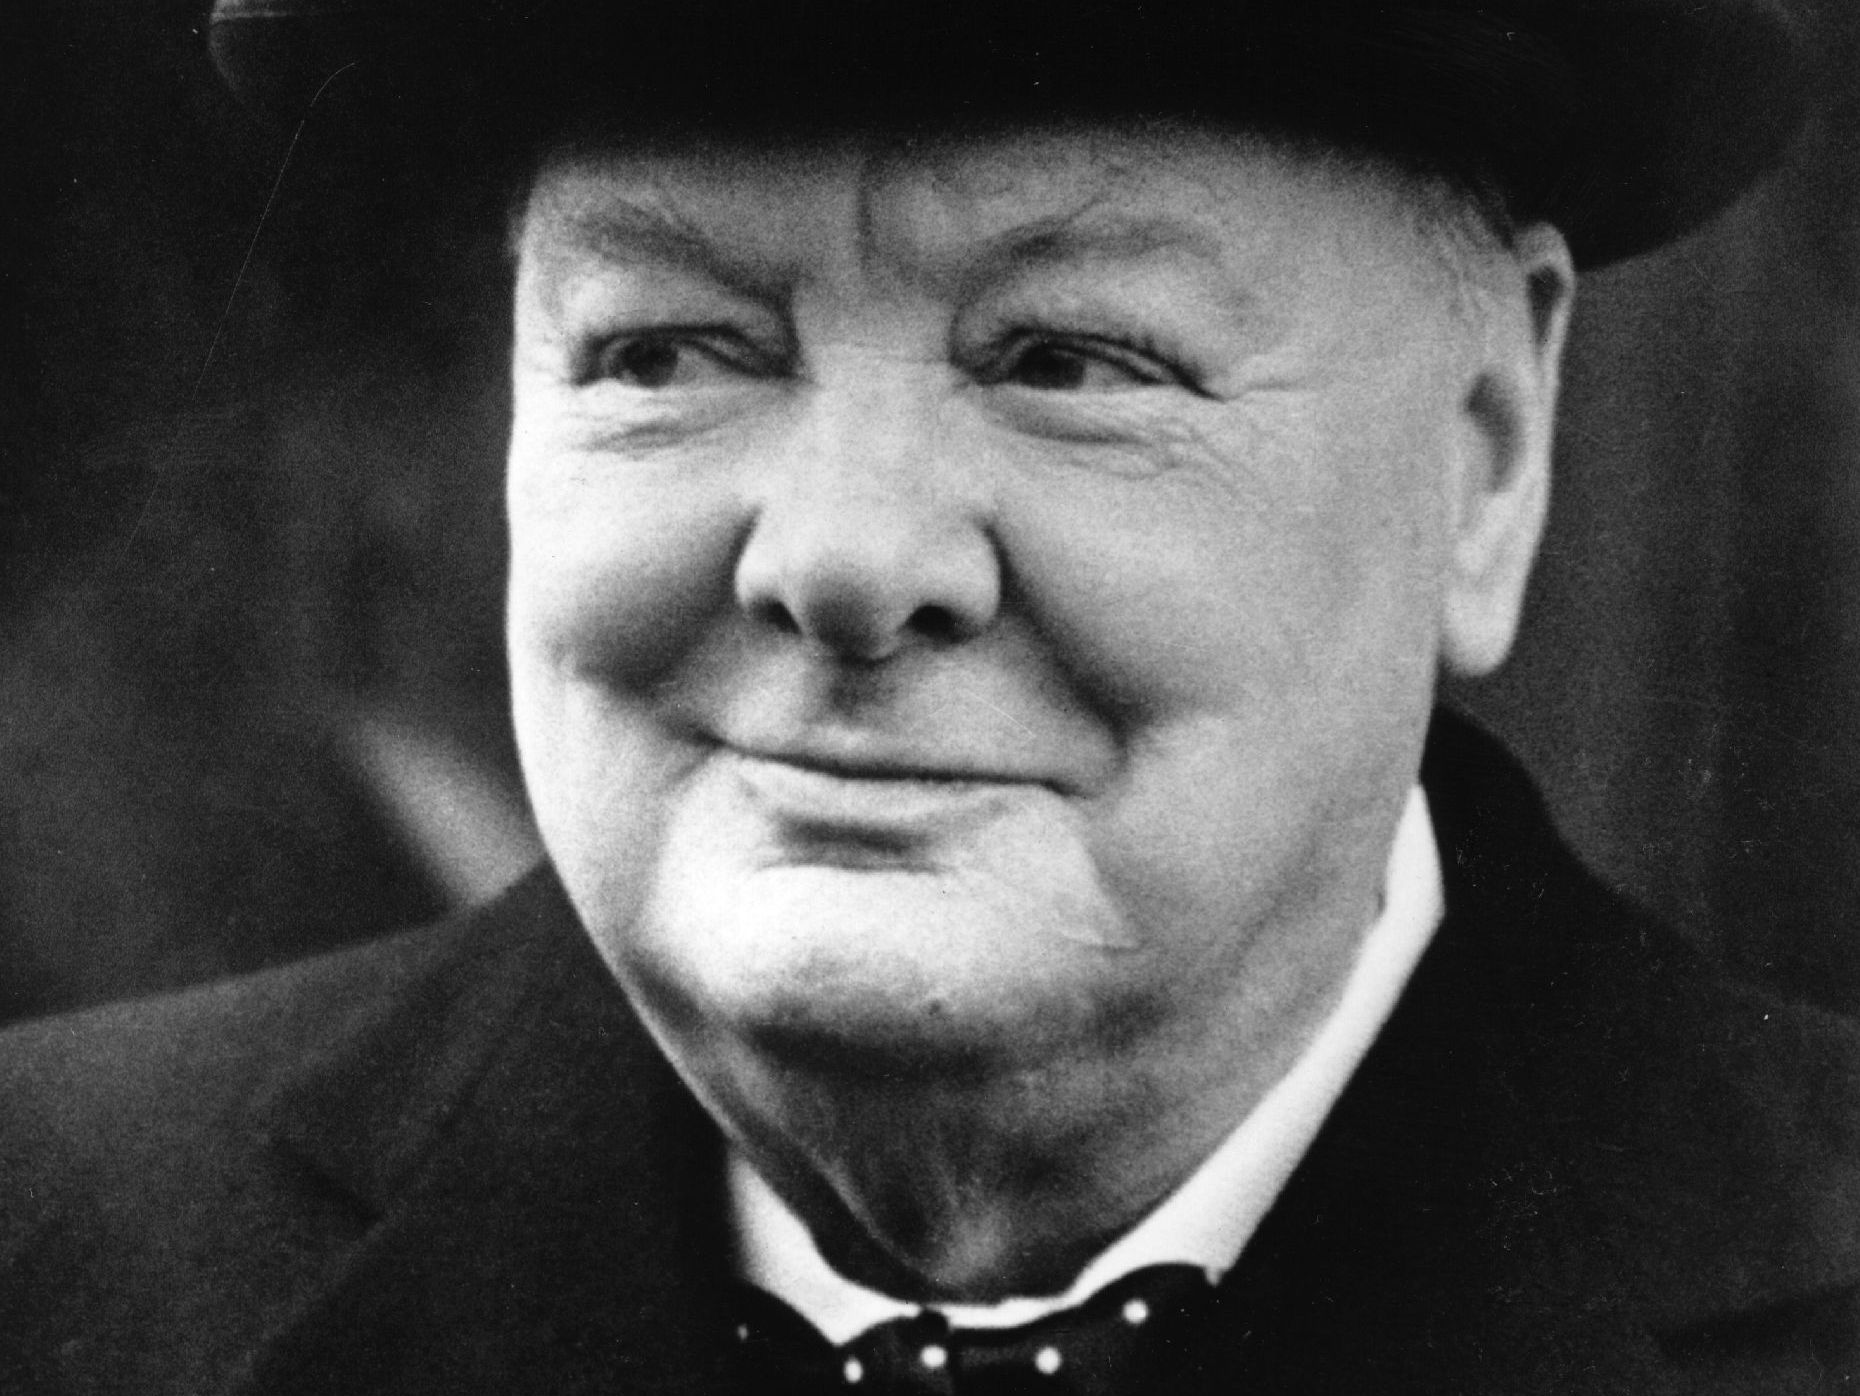 winston churchill s way words northeast na public radio